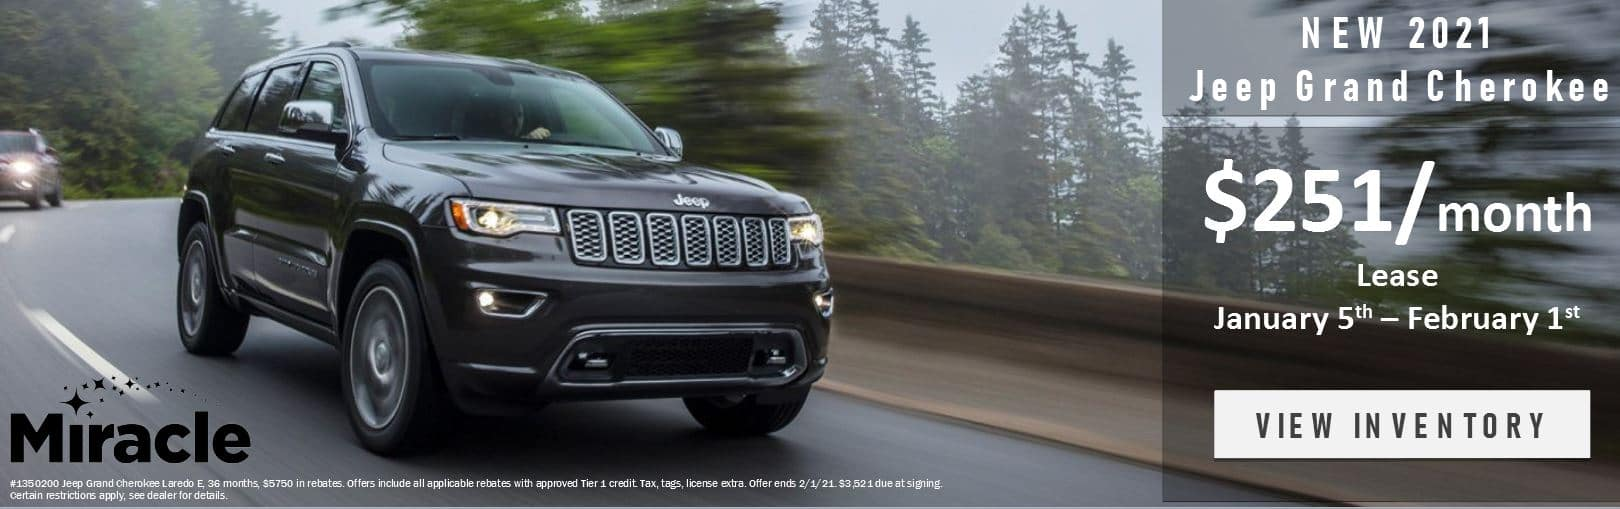 Jeep Grand Cherokee Lease Offer